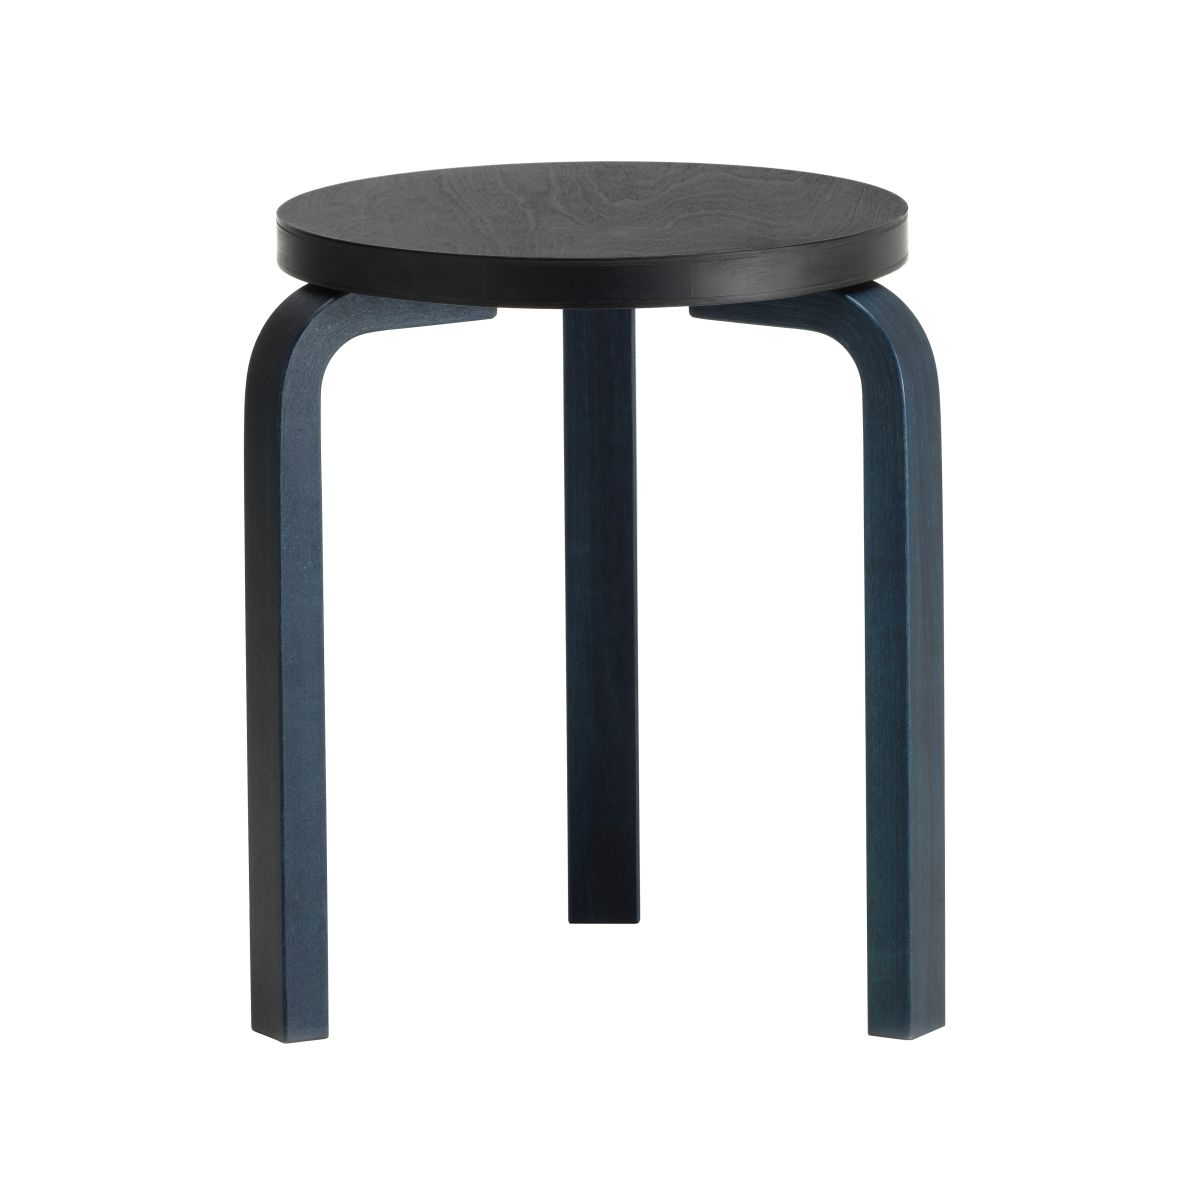 Stool-60-Aizome-clear-lacquered_F-2665055